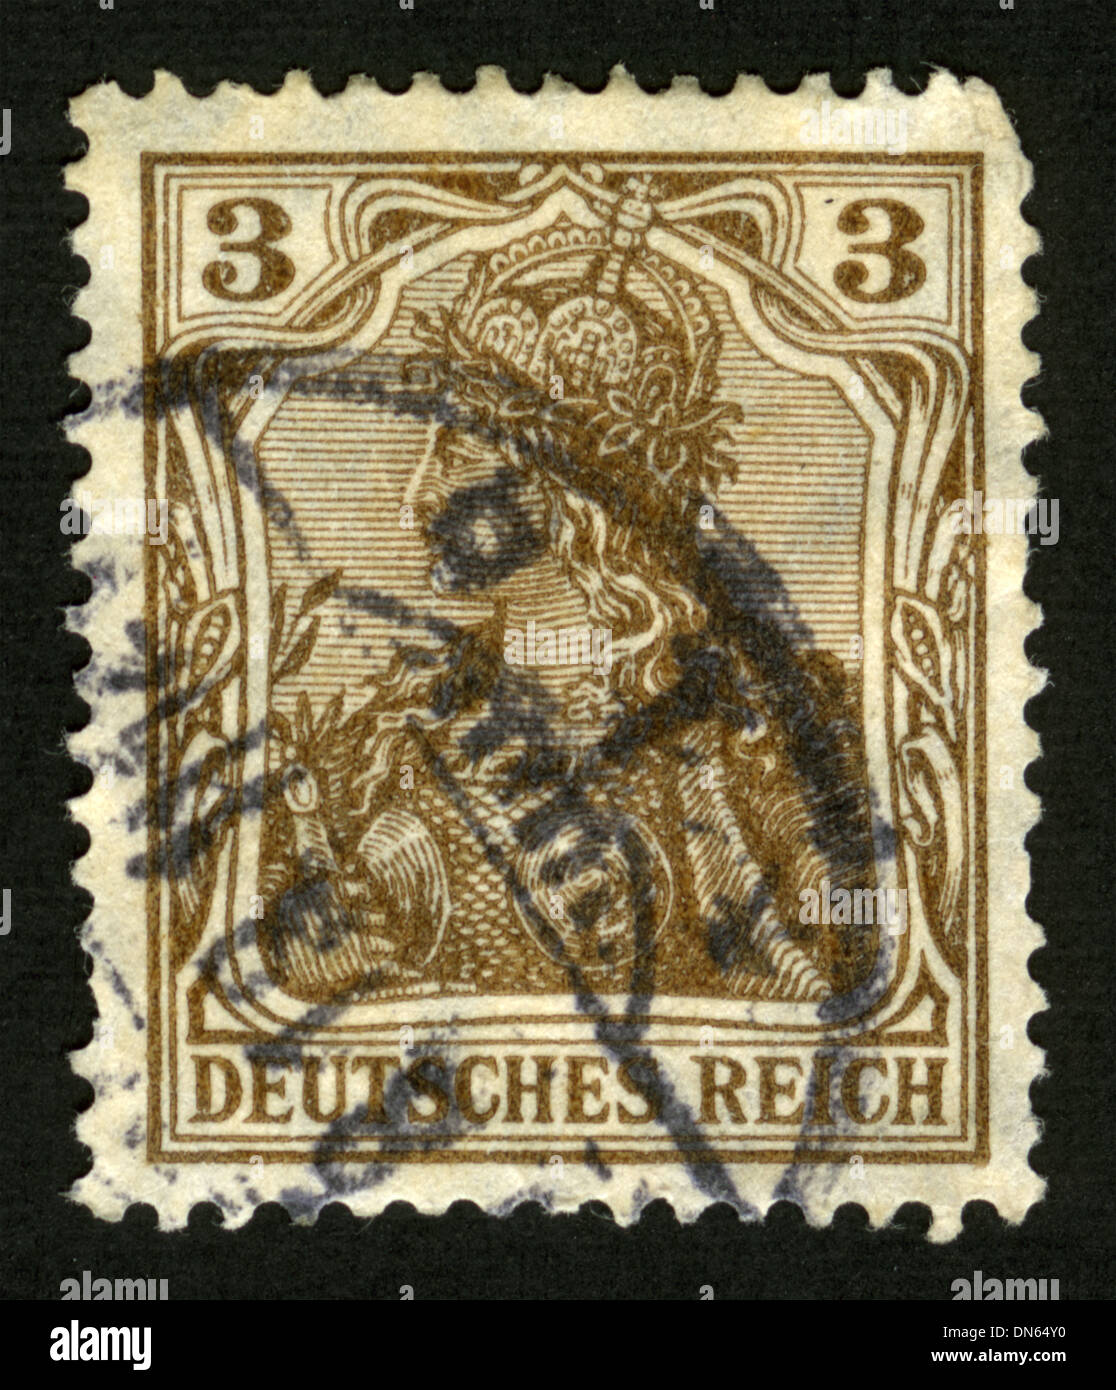 Postage stamp: Germany, AM Post, post mark, stamp, post stamp, 1902 Stock Photo